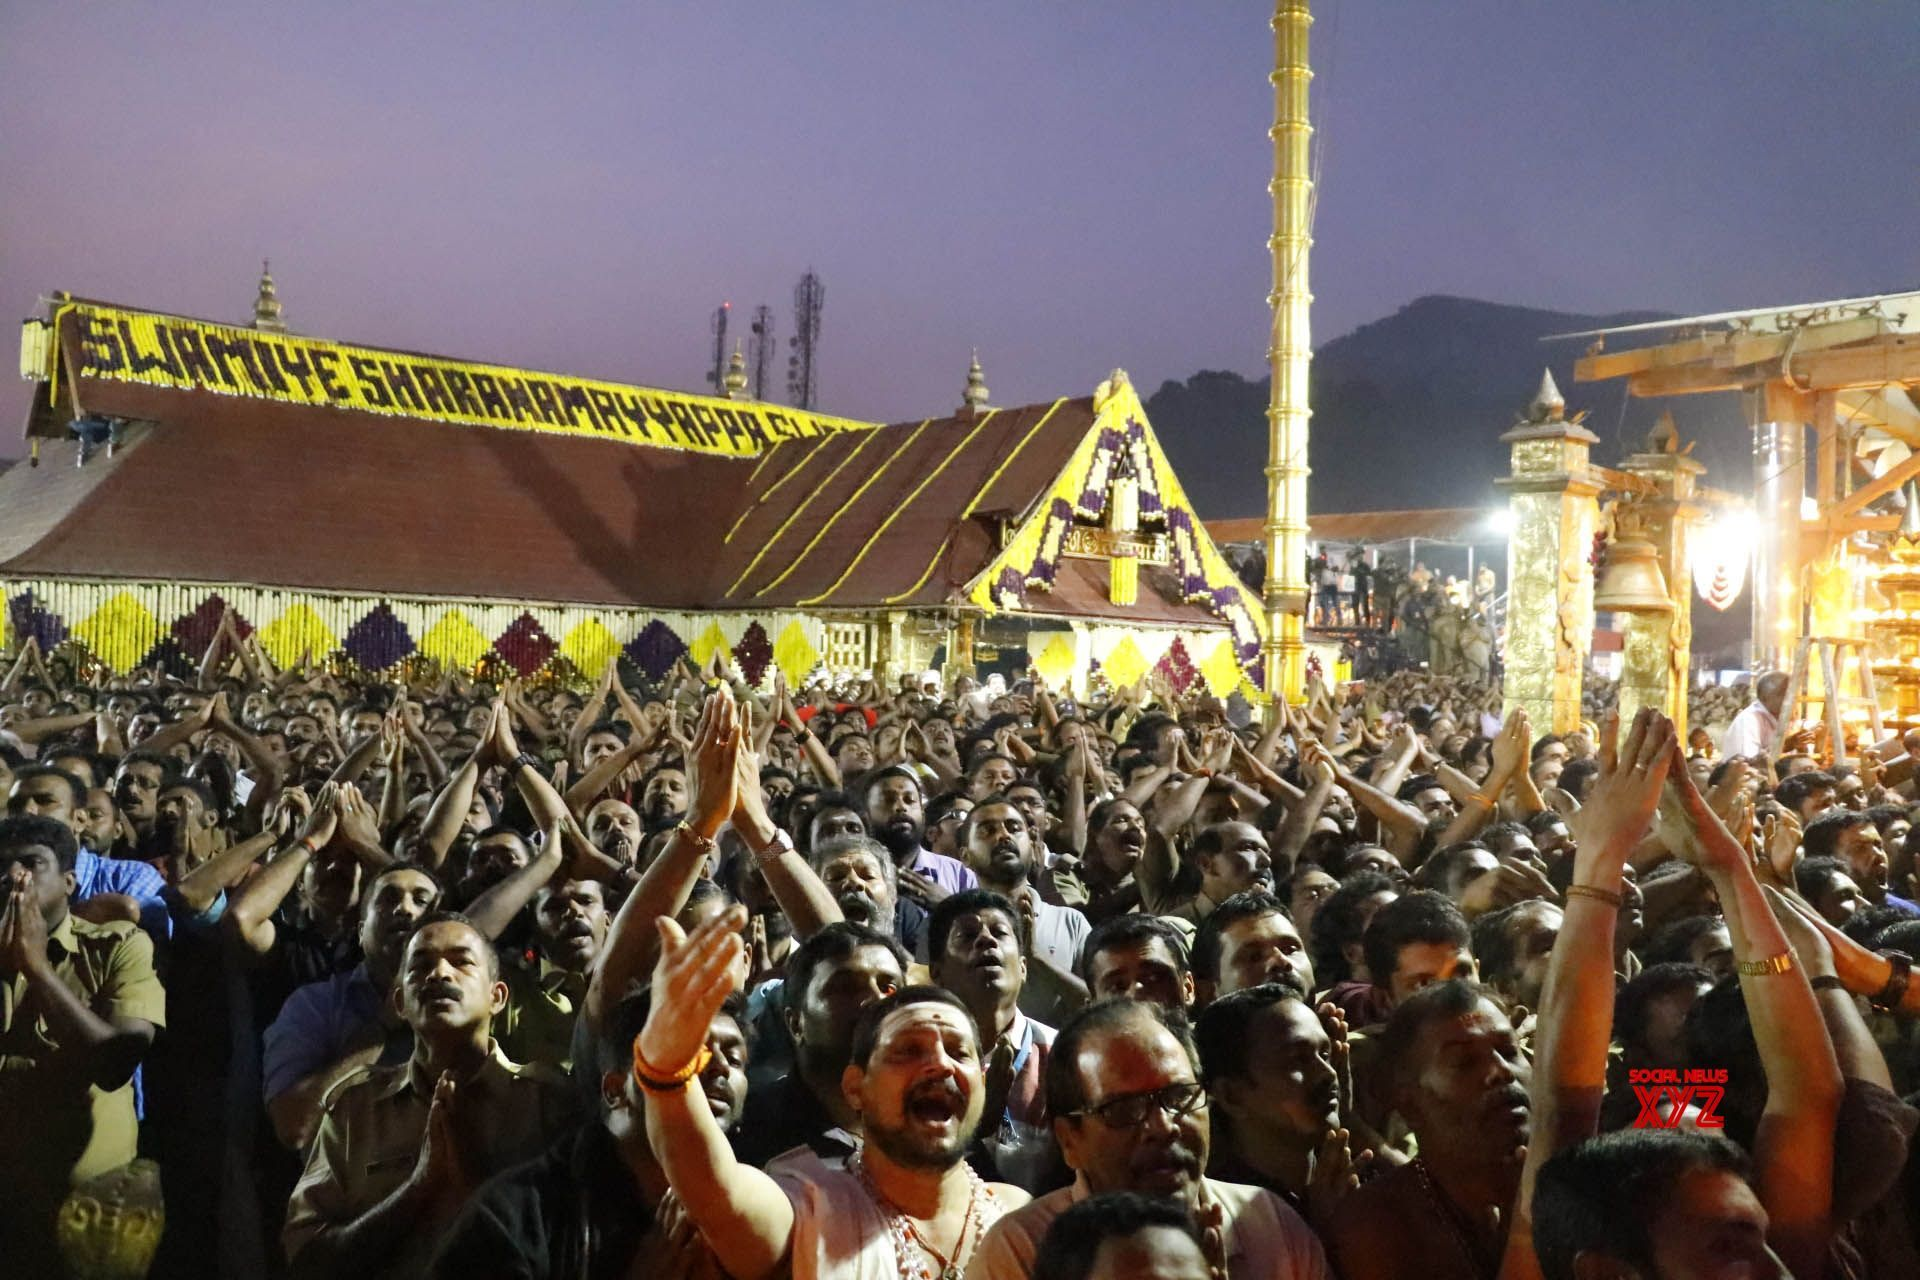 The SC has lifted the centuries-old ban on women's entry to the Sabrimala temple thus granting women their freedom of choice to worship.